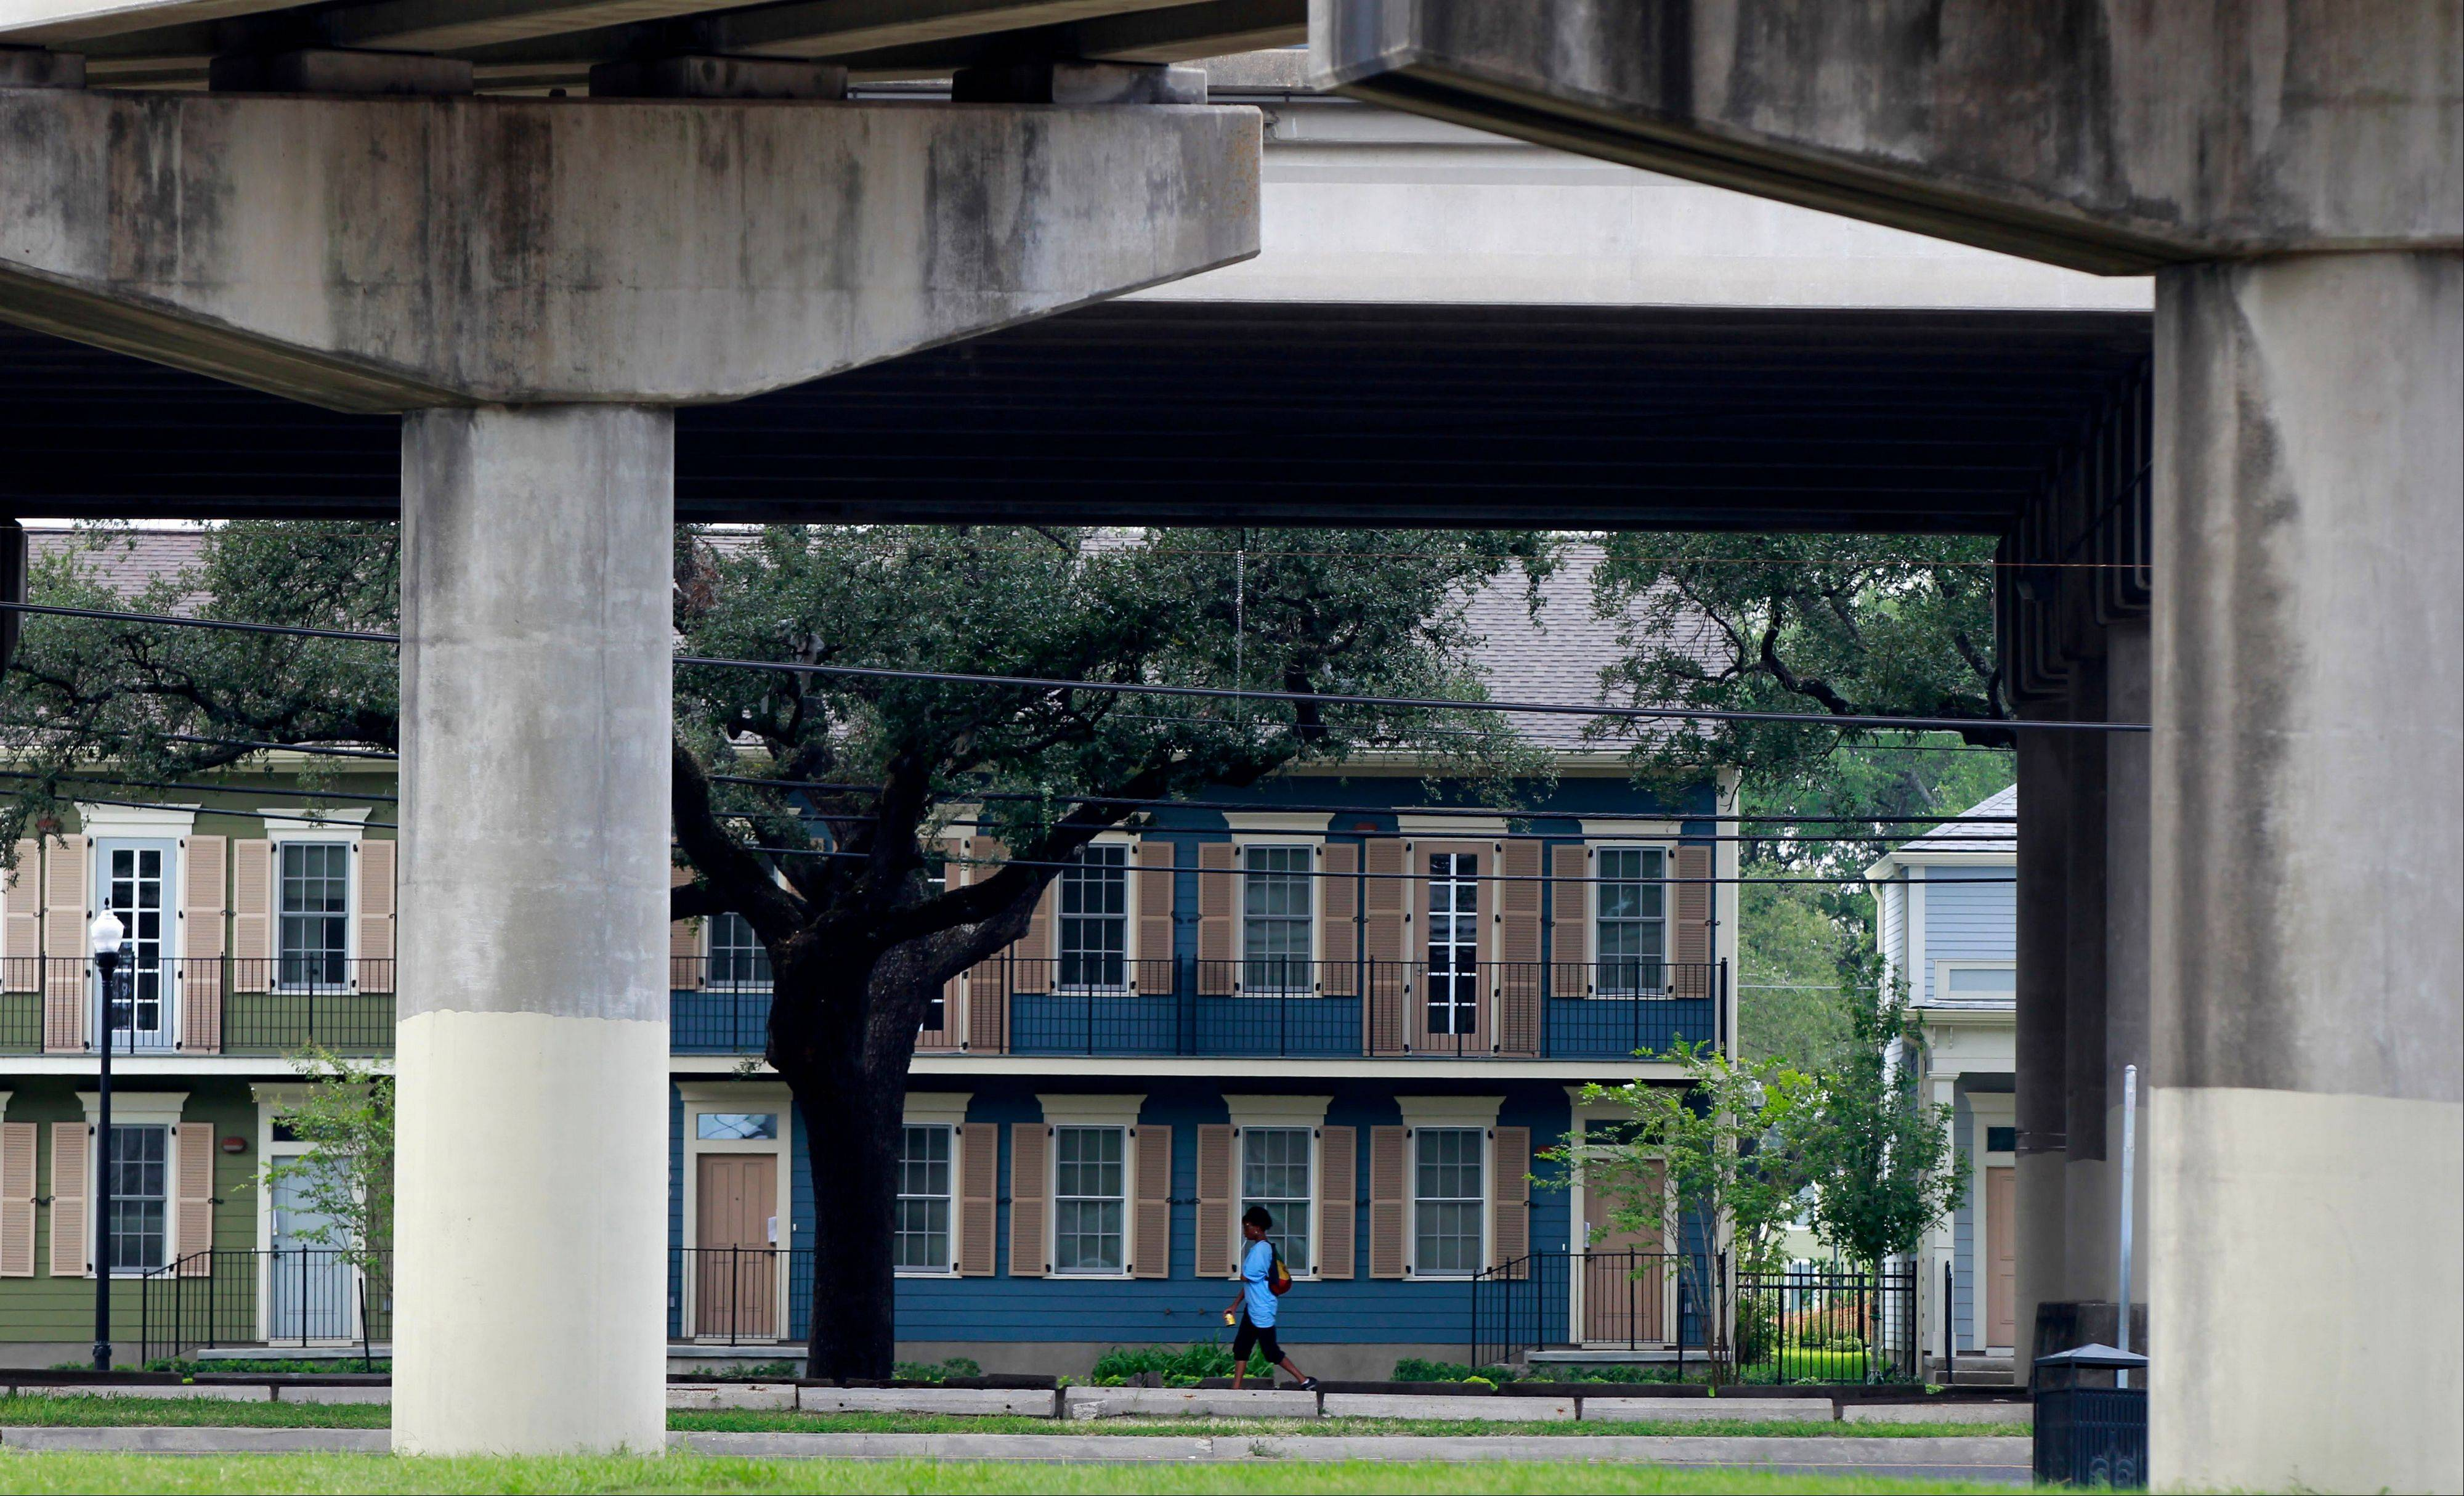 A woman walks past new public assisted housing where the Lafitte housing projects once stood, with the elevated Interstate 10 on Claiborne Ave. in the foreground in New Orleans.